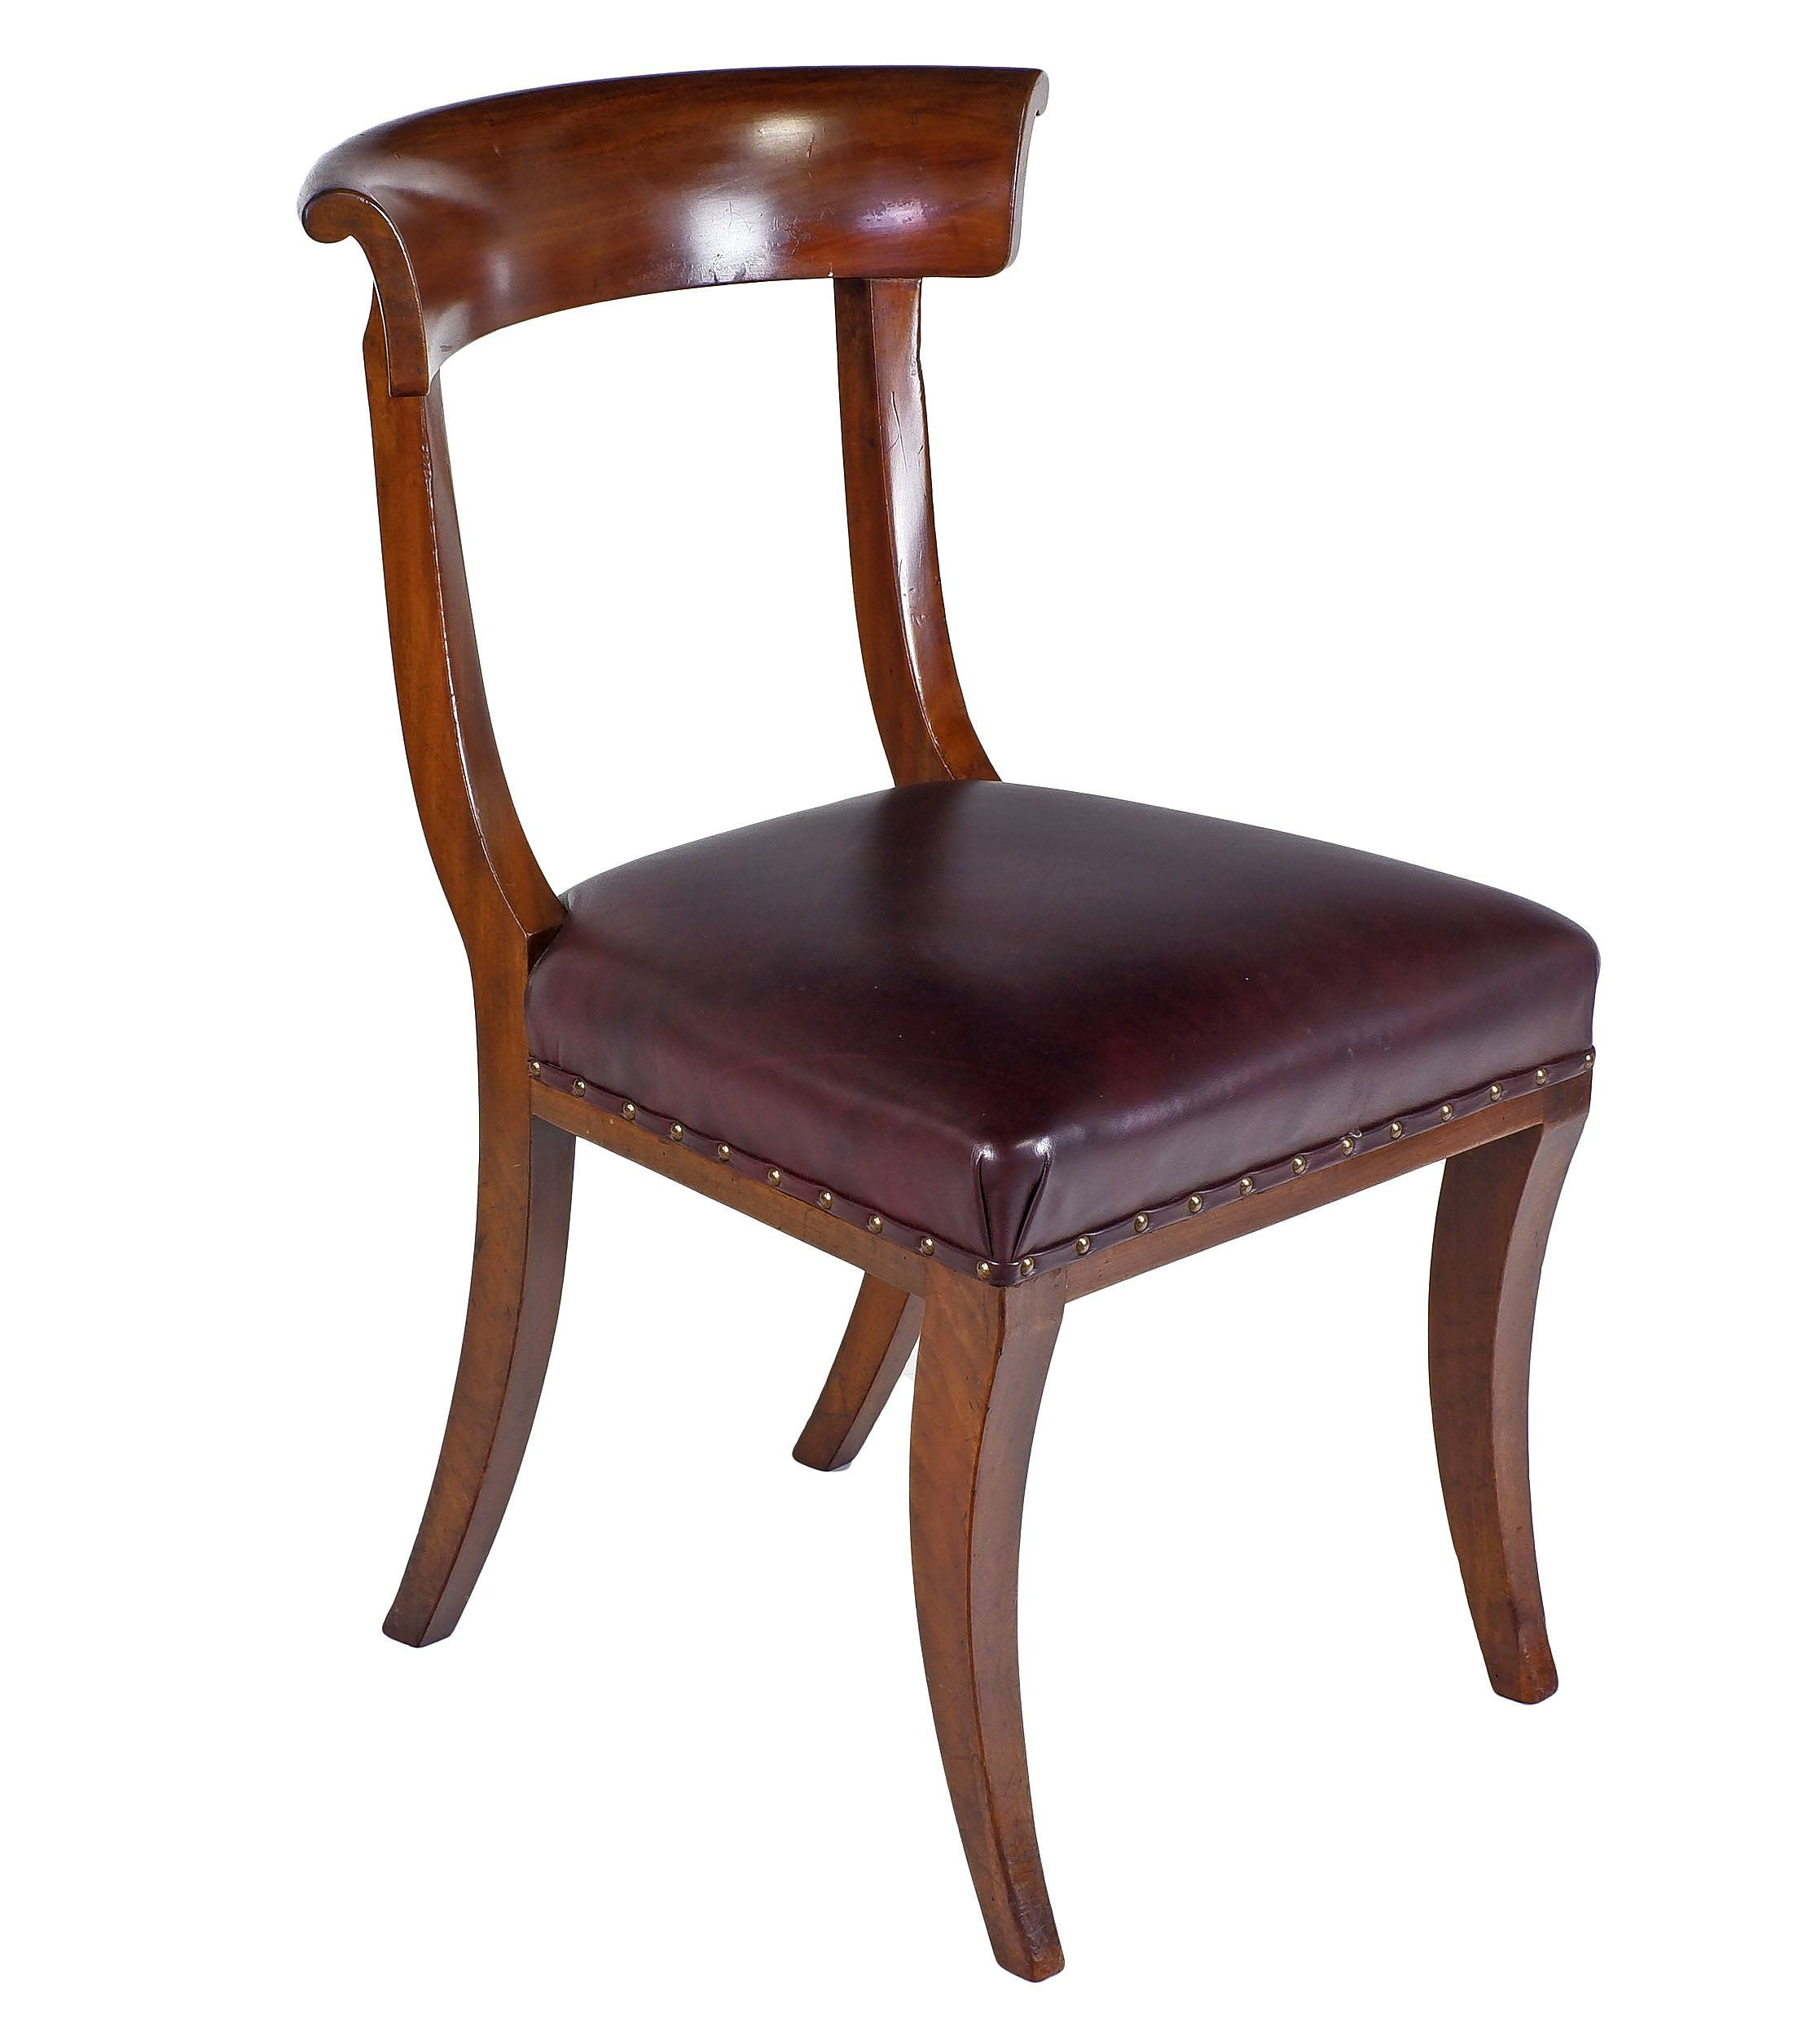 'Good Set Of Seven Regency Sabre Leg Mahogany Dining Chairs in the Classical Klismos Style Circa 1820'